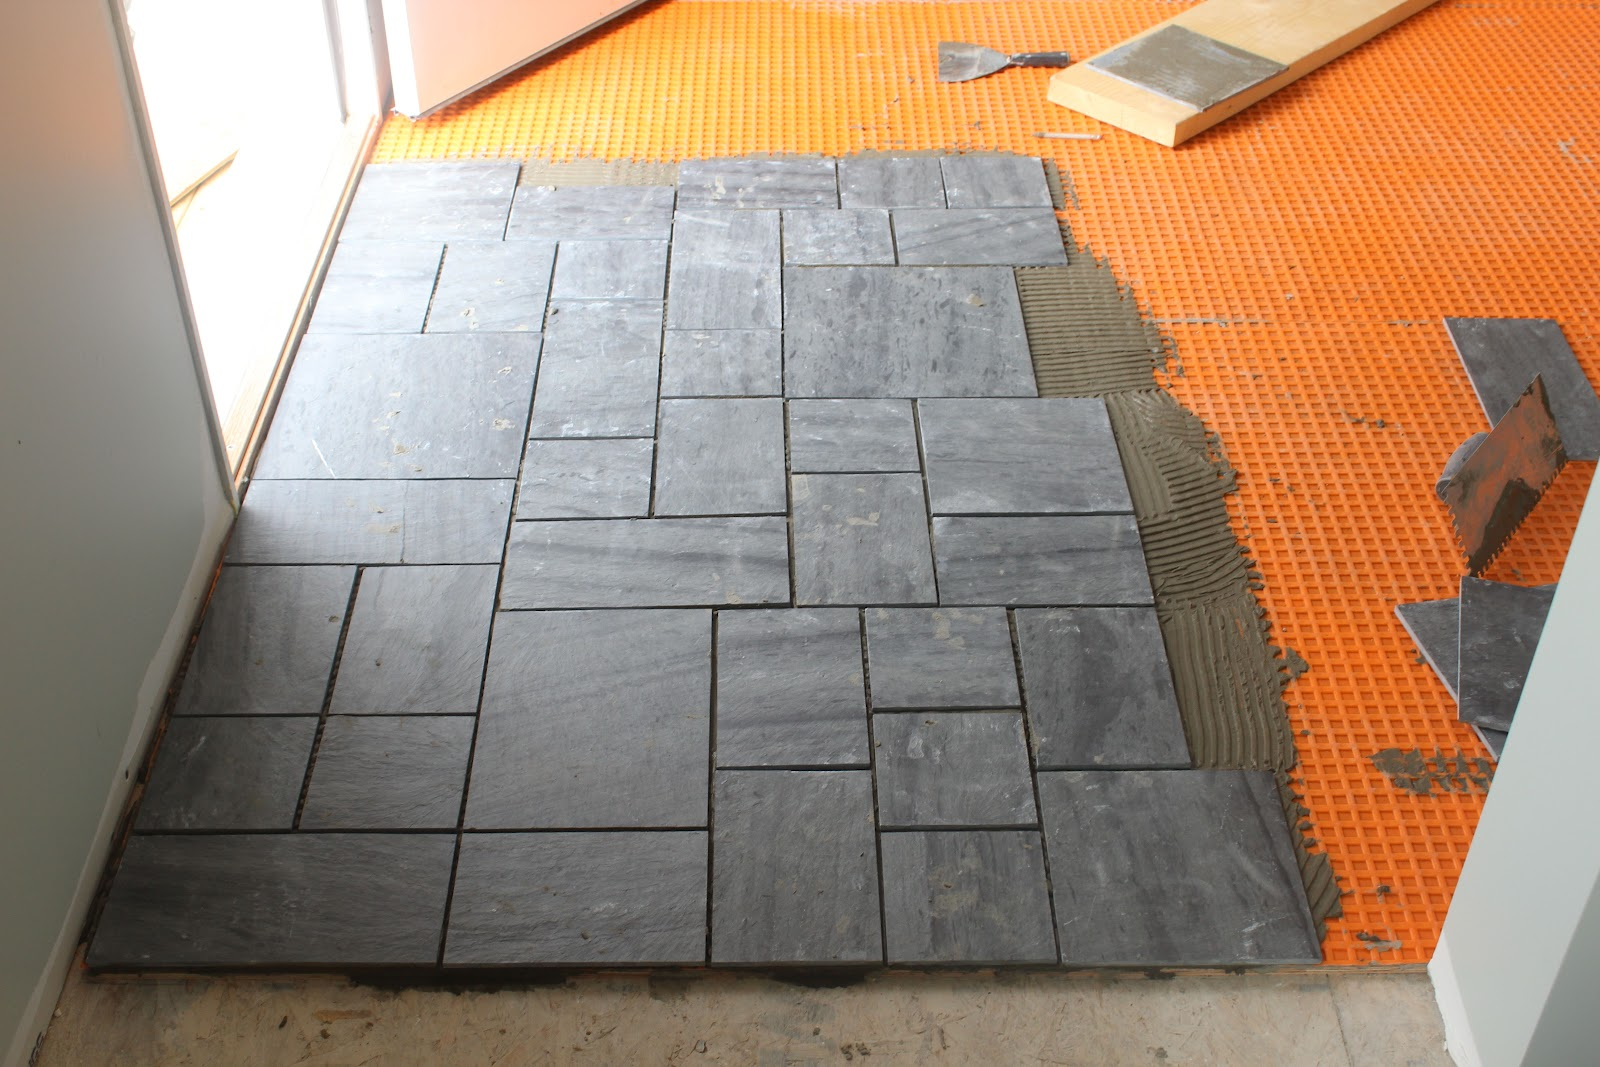 replace bathroom floor tiles. step 6how to install bathroom floor